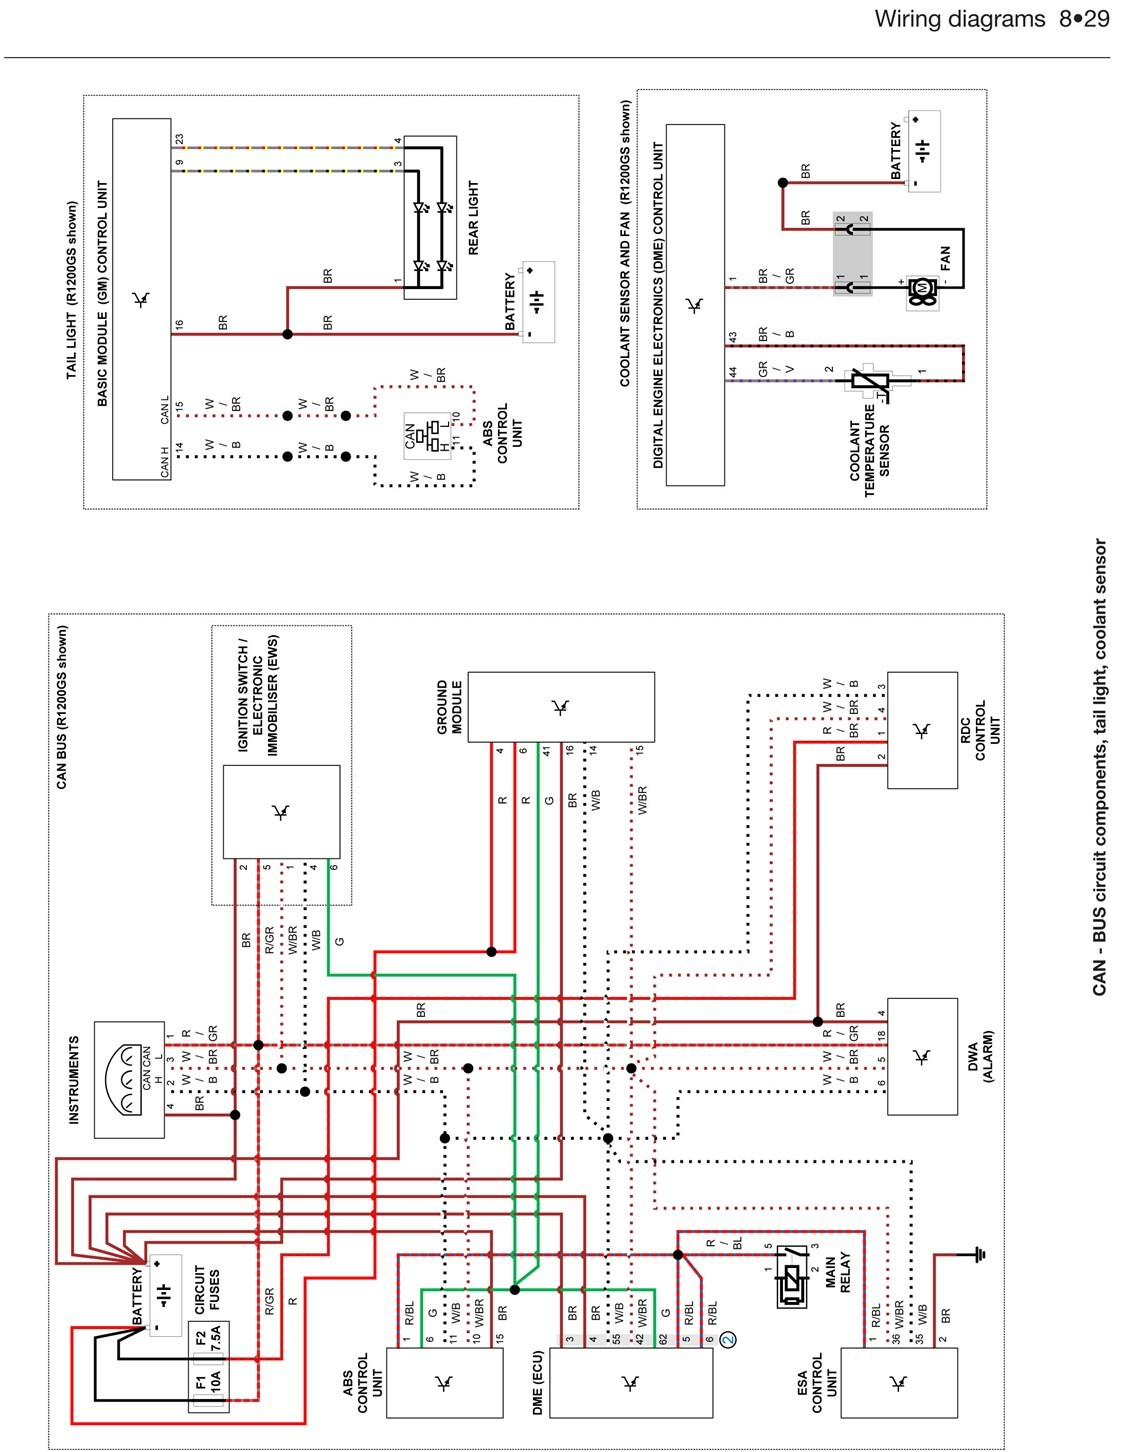 Zing Ear Ze-208S Wiring Diagram from www.nippynormans.com